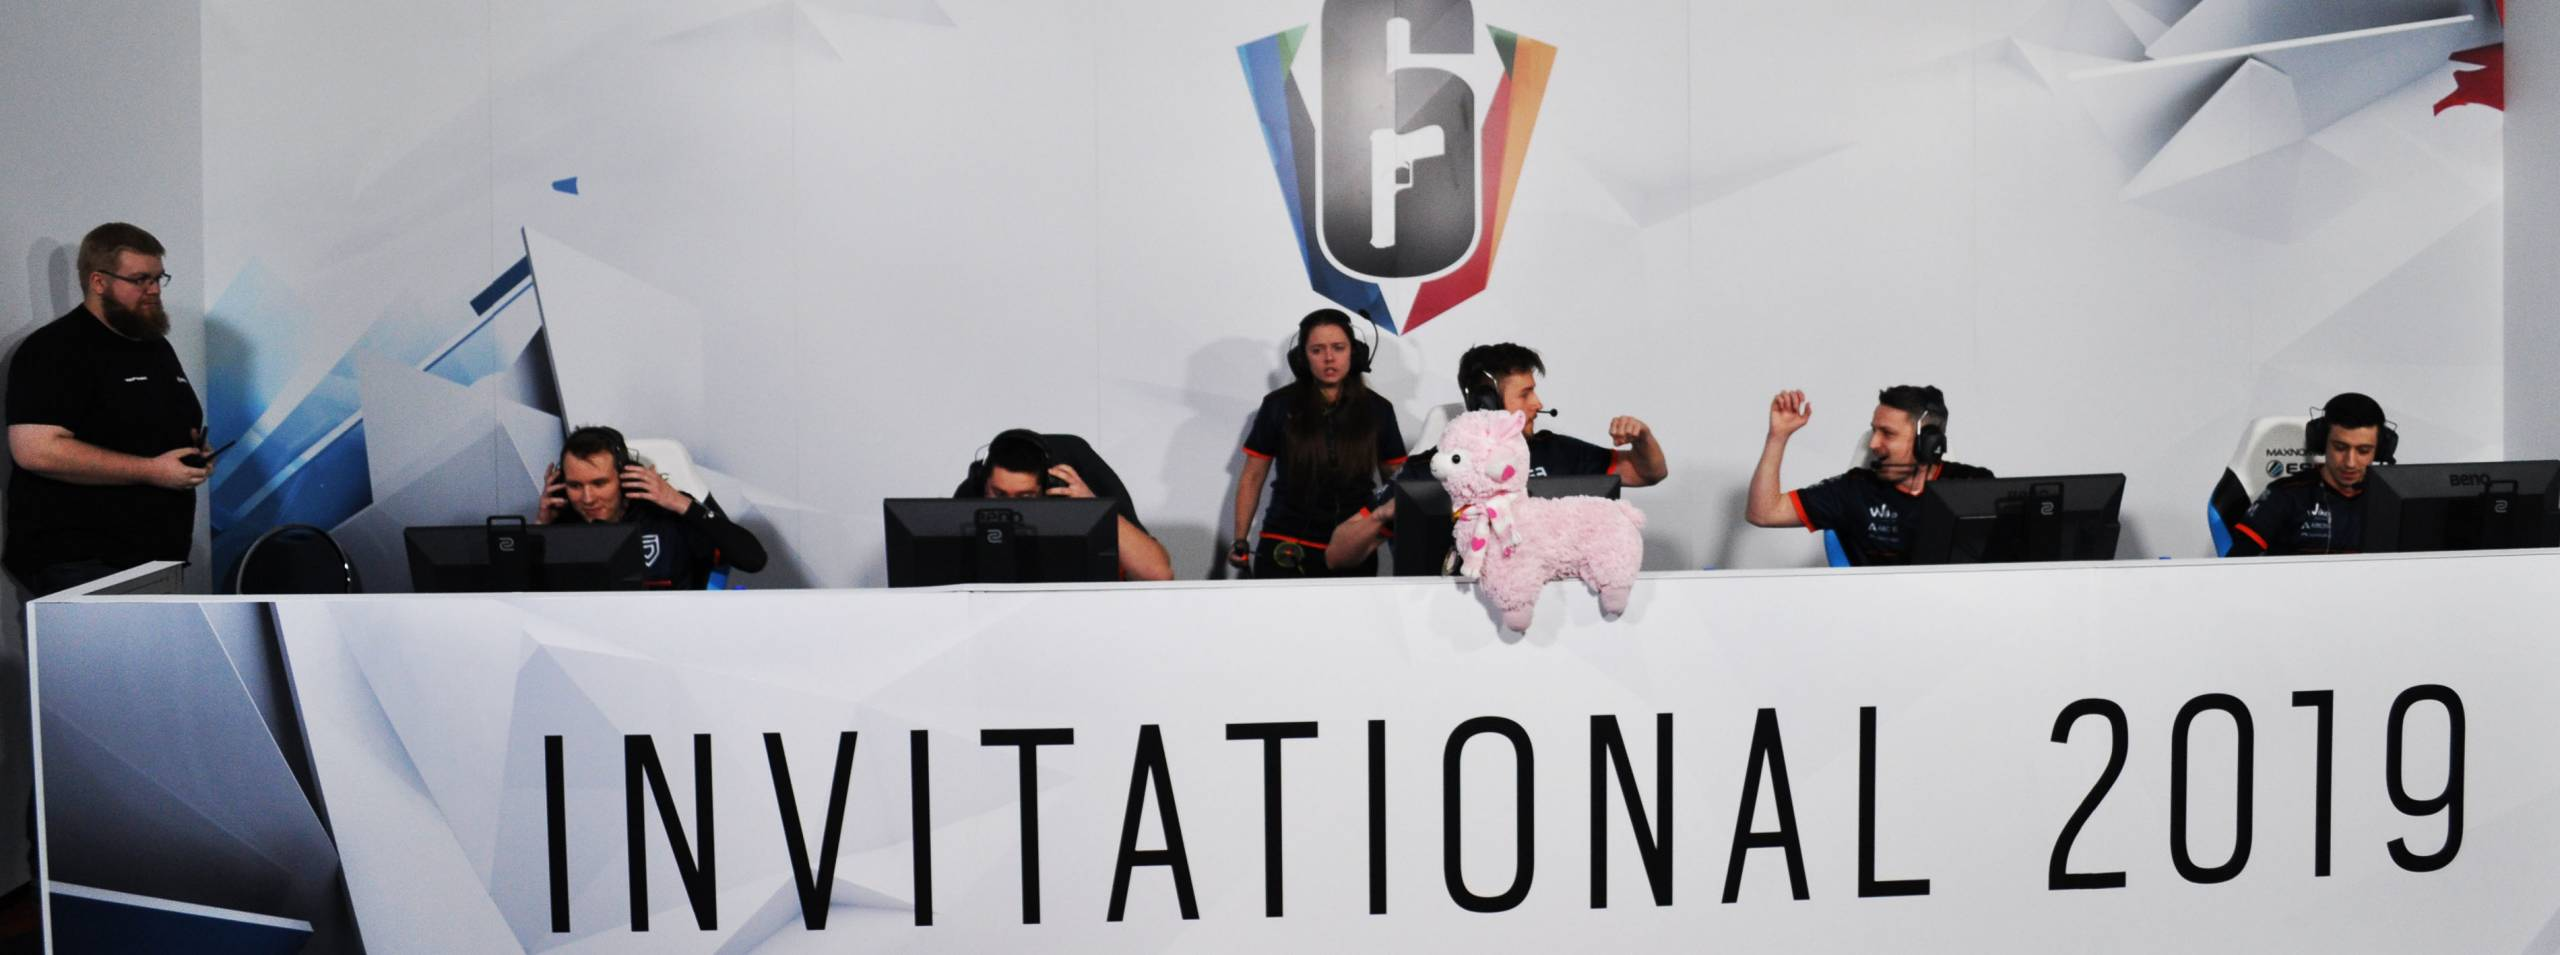 PENTA beim Six Invitational von Rainbow Six Siege